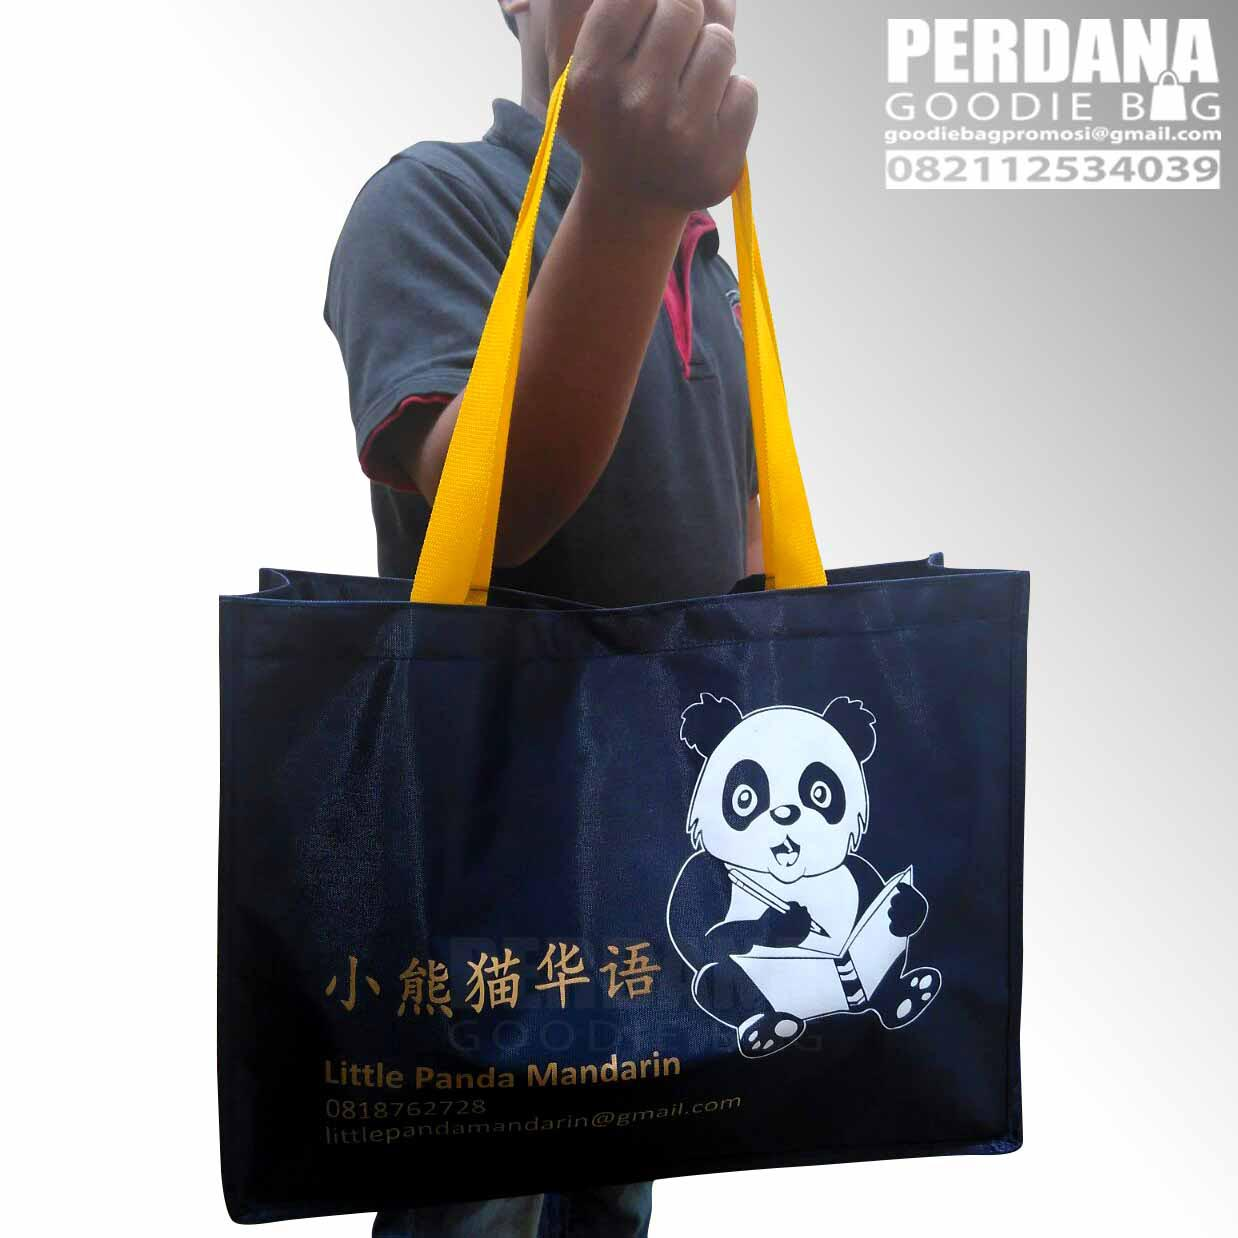 goodie-bag-d420-panda-by-perdana